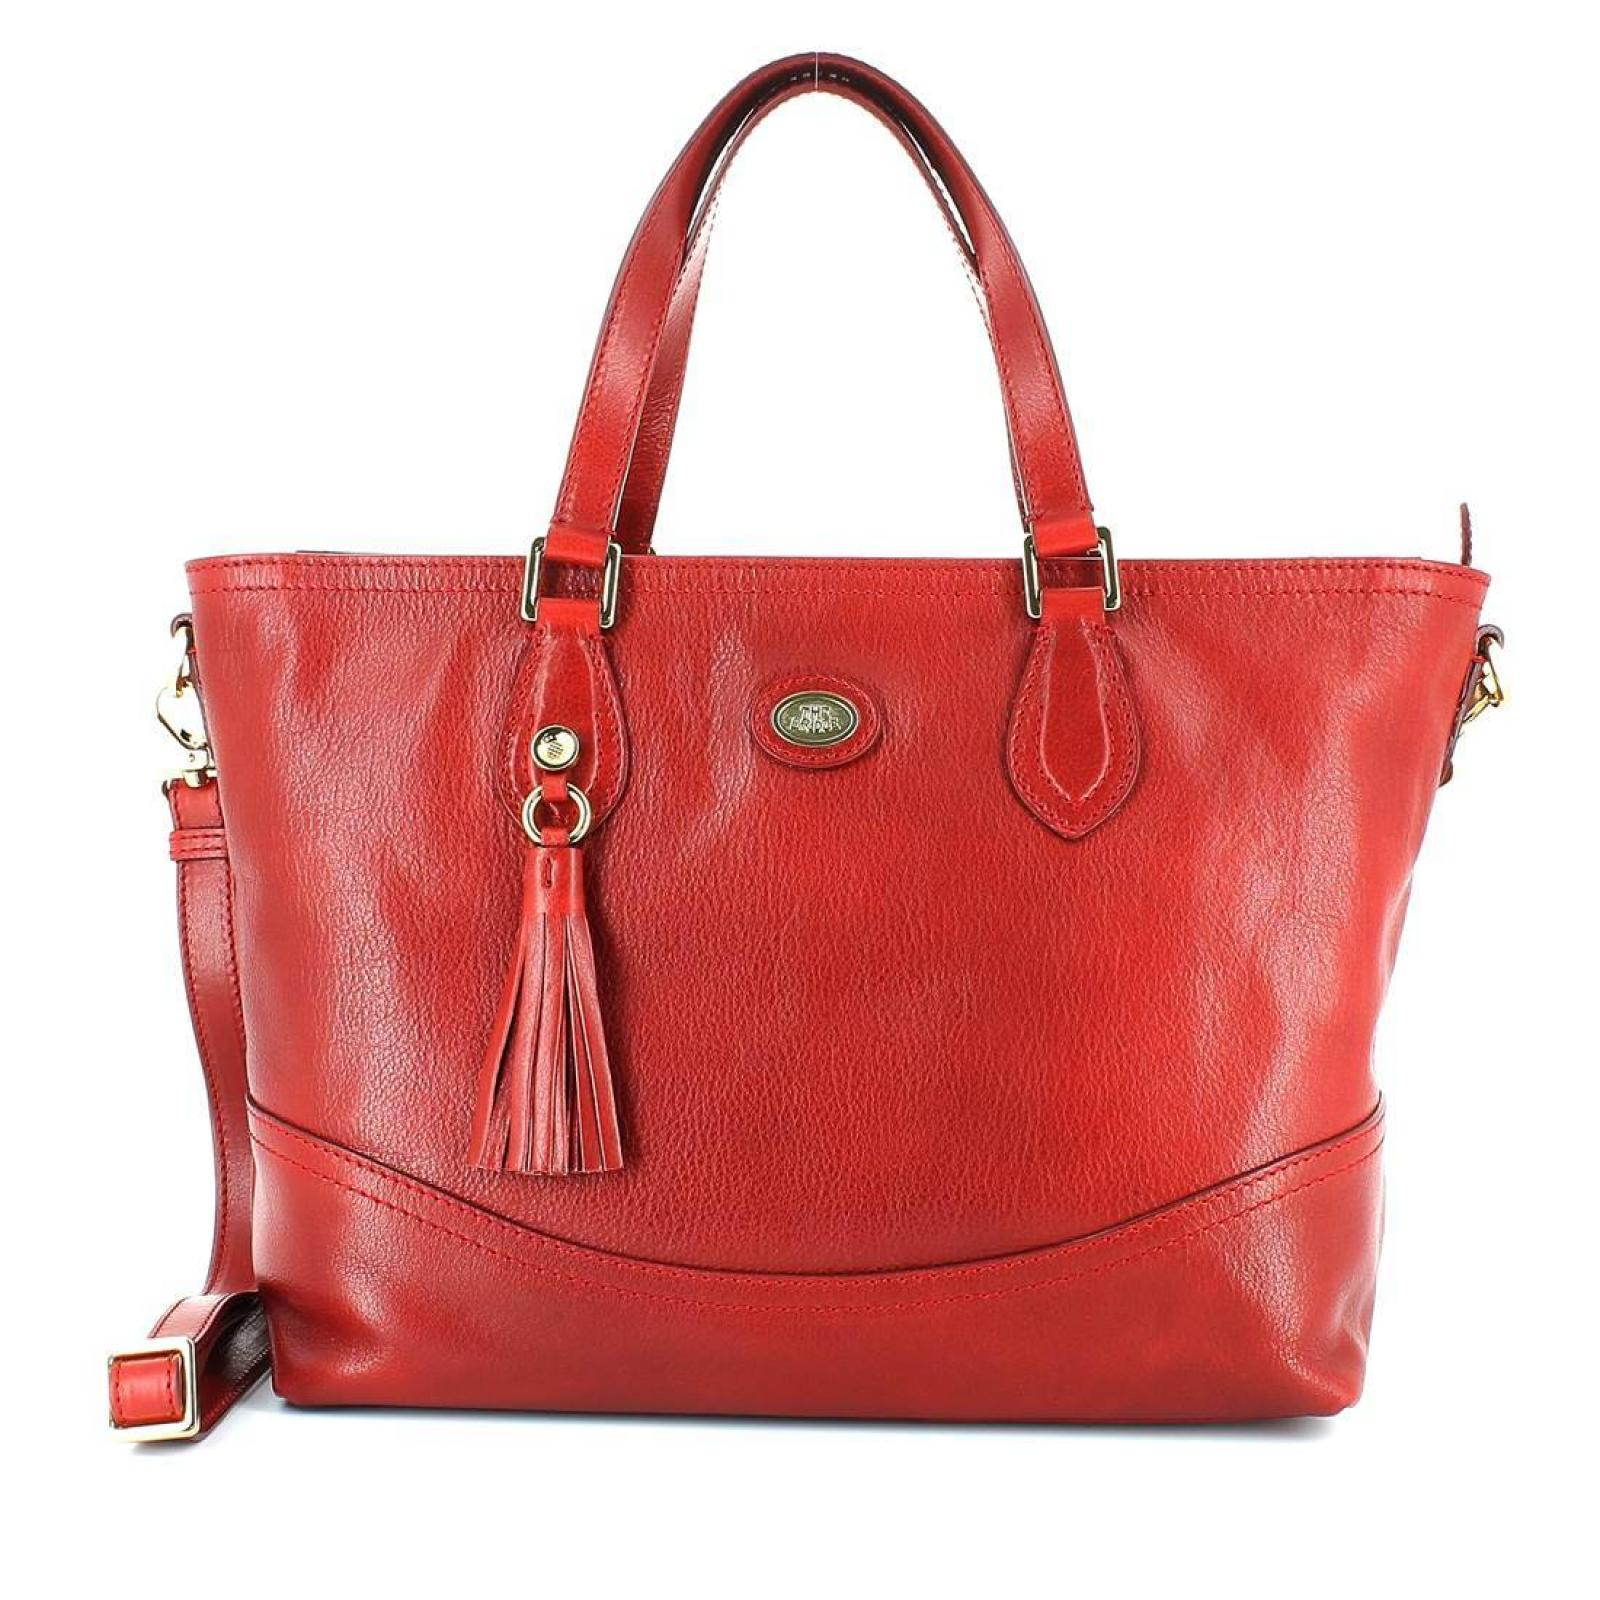 Classic Leather Handbag